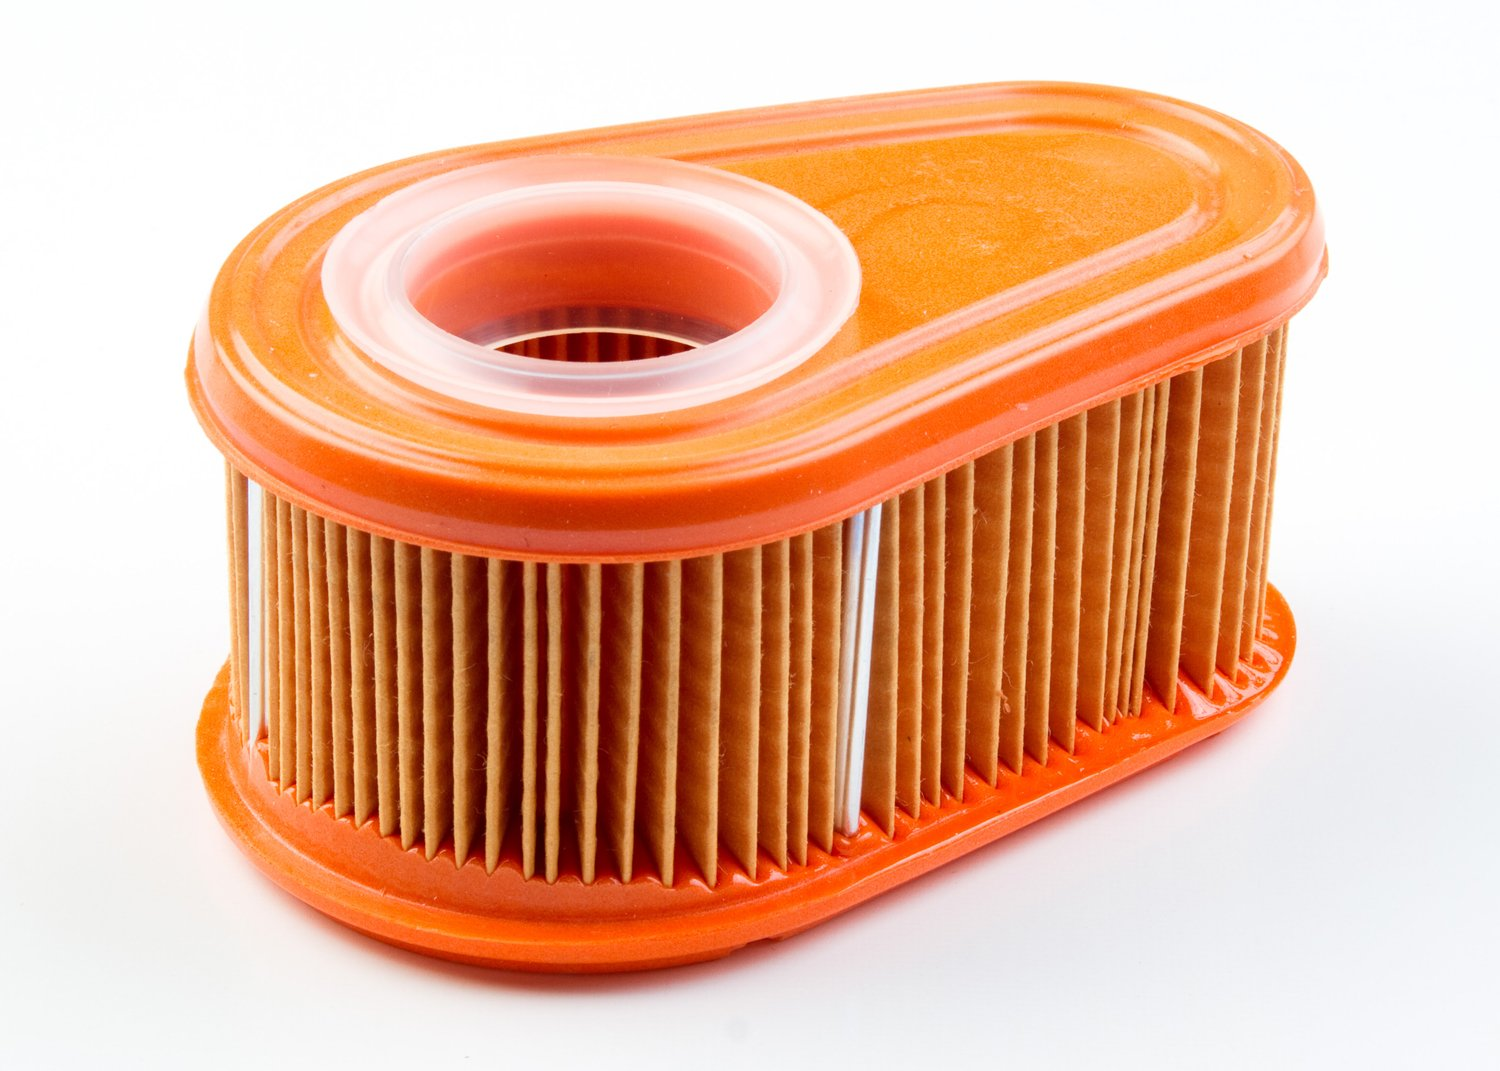 Briggs And Stratton Genuine 792038 Air Cleaner Filter Gcv160 N7a1 Engine Jpn Honda Small Cylinder Diagram Parts Garden Outdoors